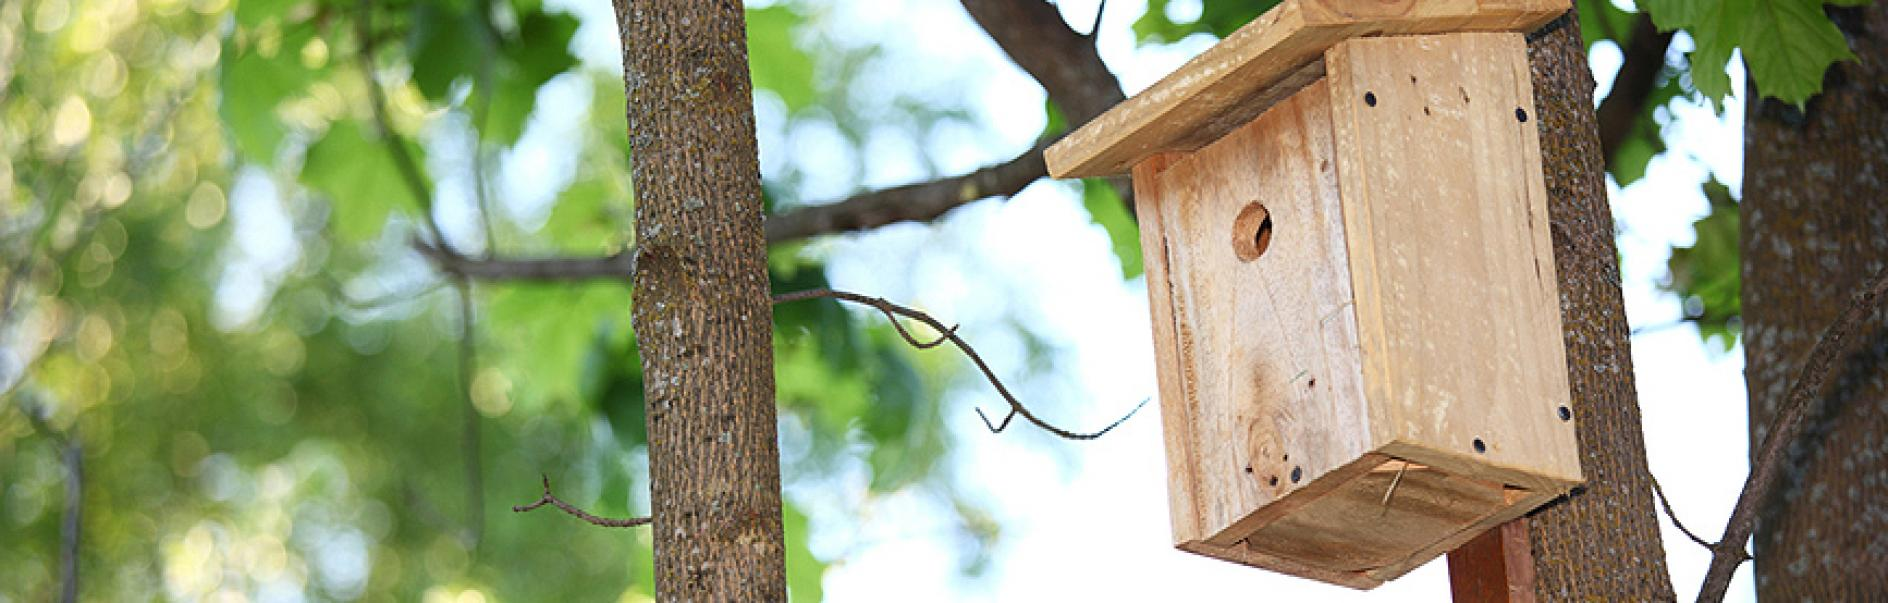 how to make a birdhouse out of wood rh skil co uk make a birdhouse with popsicle sticks make a birdhouse for kids